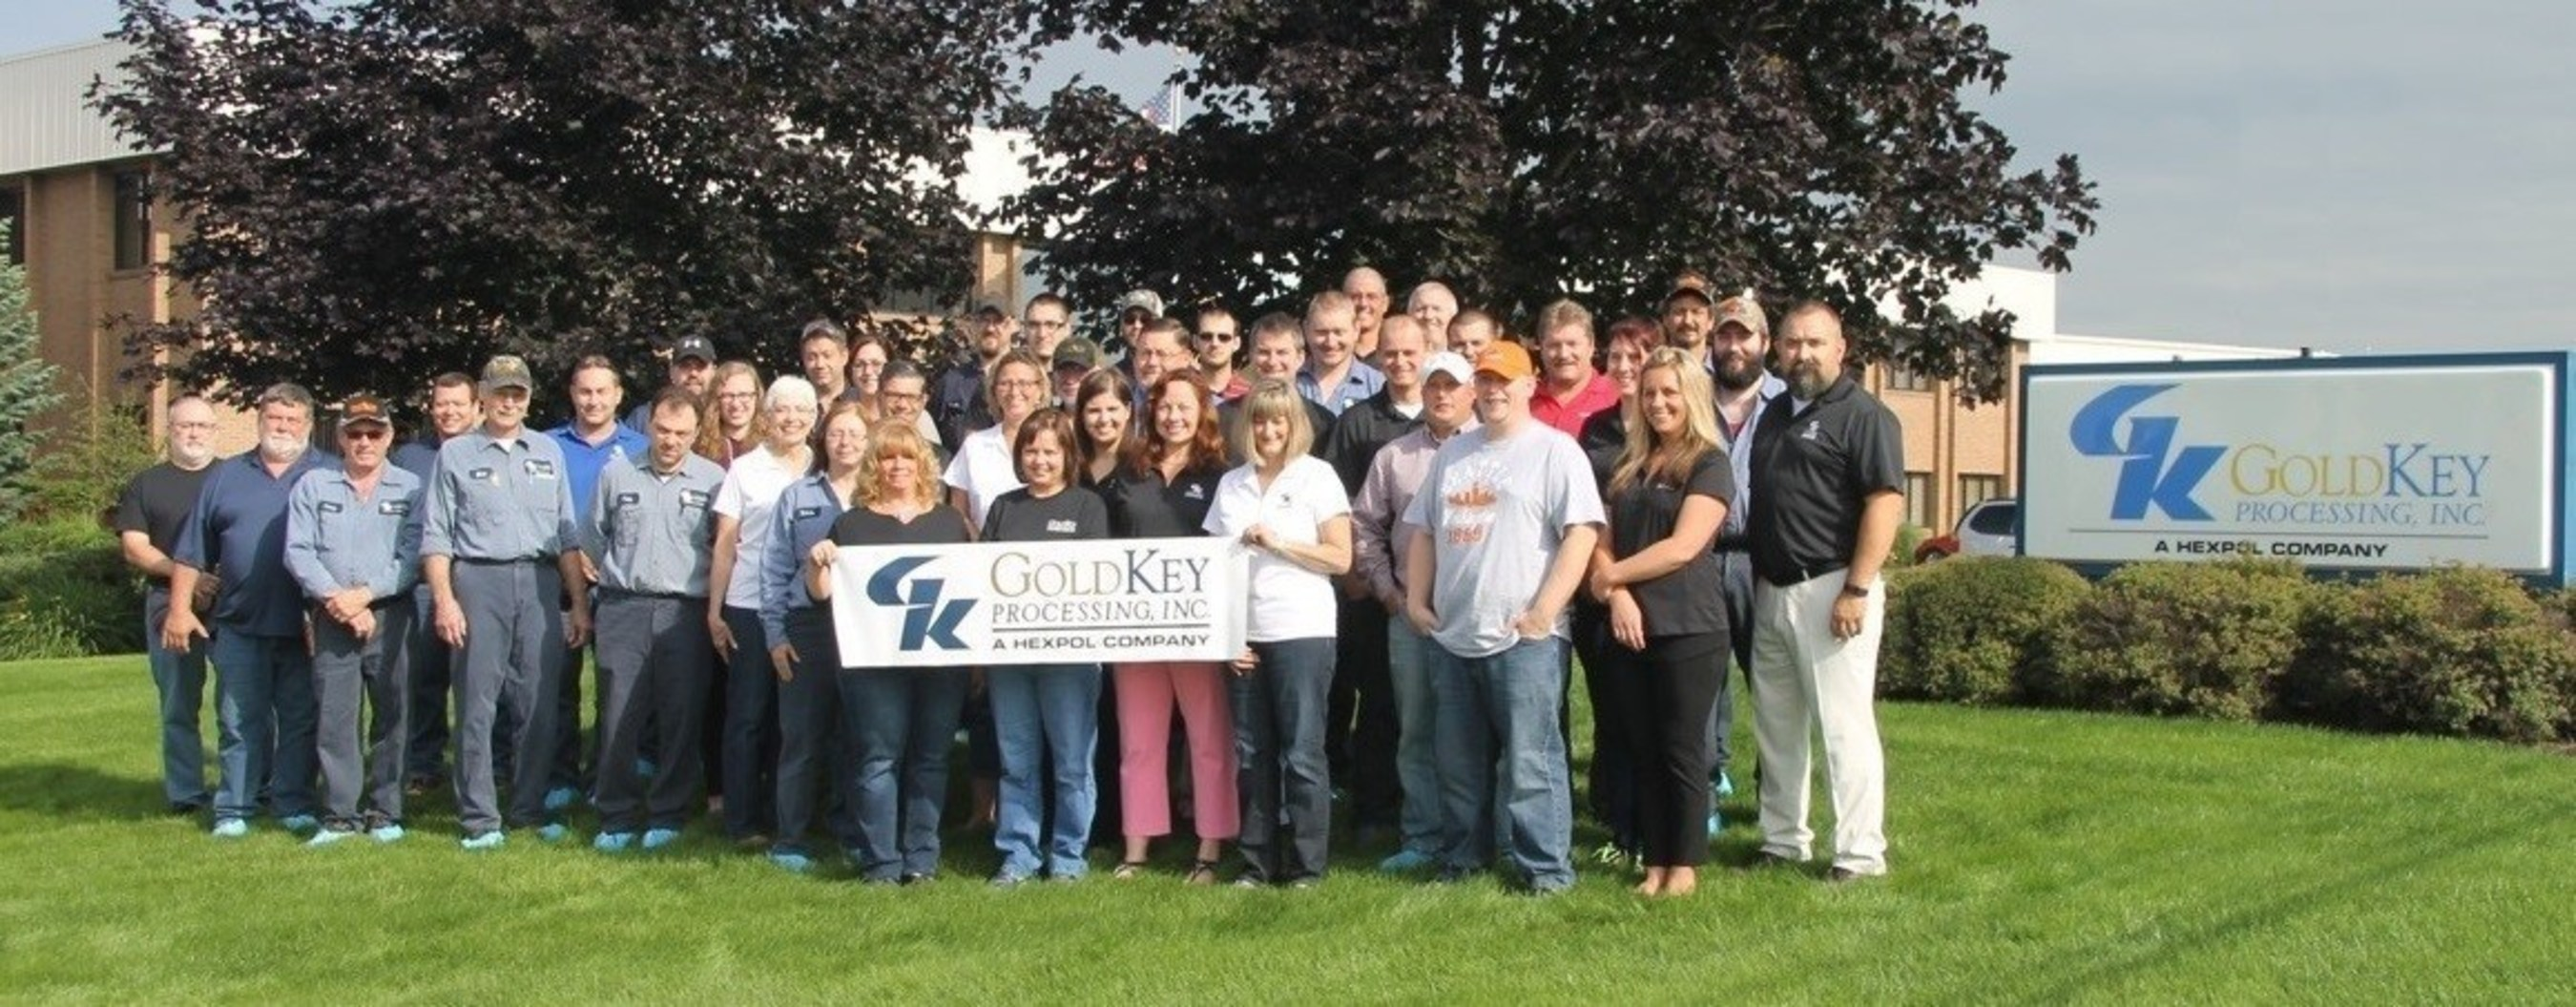 Gold Key Processing, one of HEXPOL's northeast Ohio facilities, takes pride for being ranked in The Cleveland Plain Dealer's 2015 Top 150 Workplaces for the third year in a row.